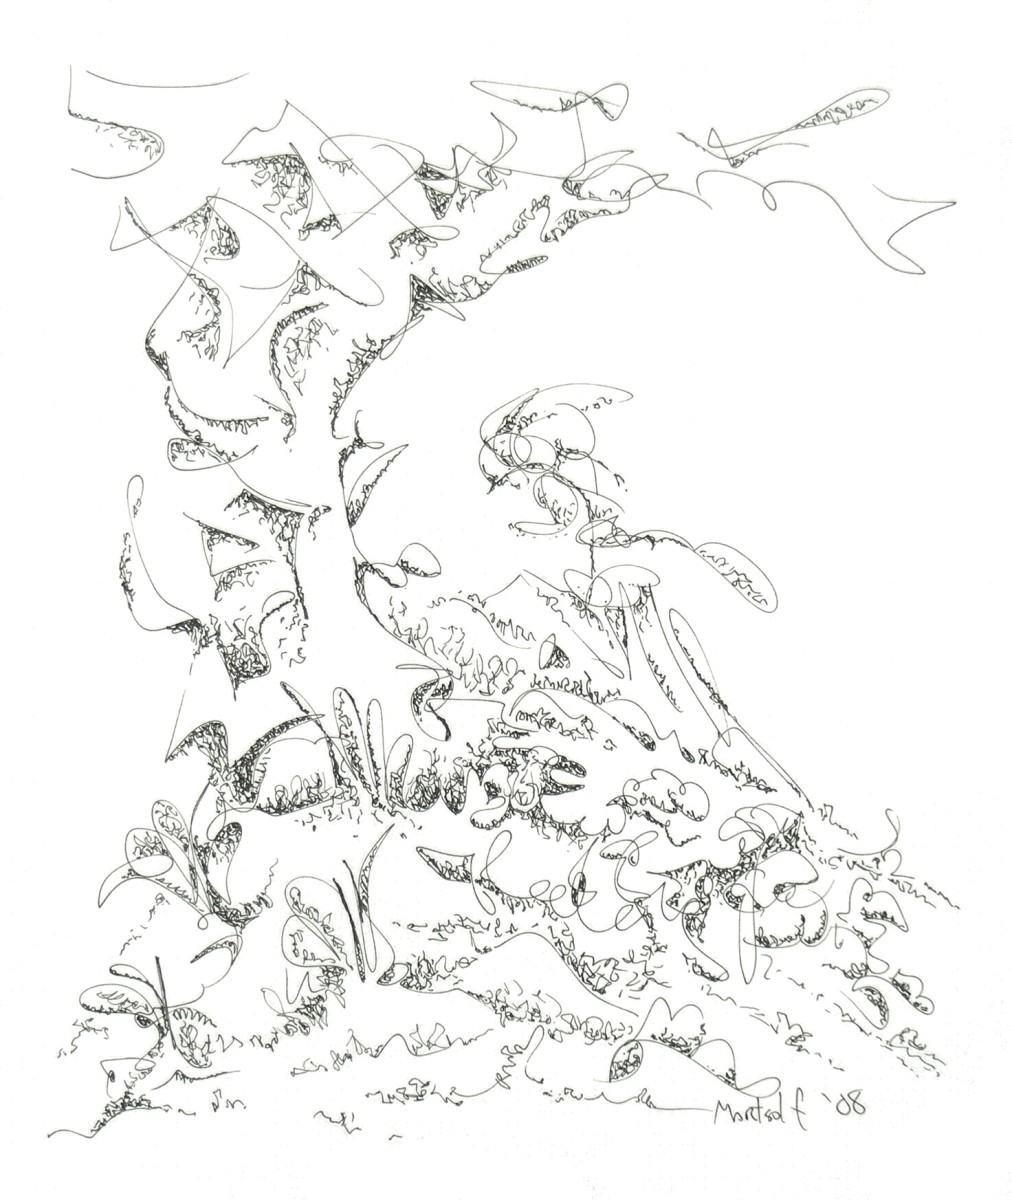 Mountainside, the drawing